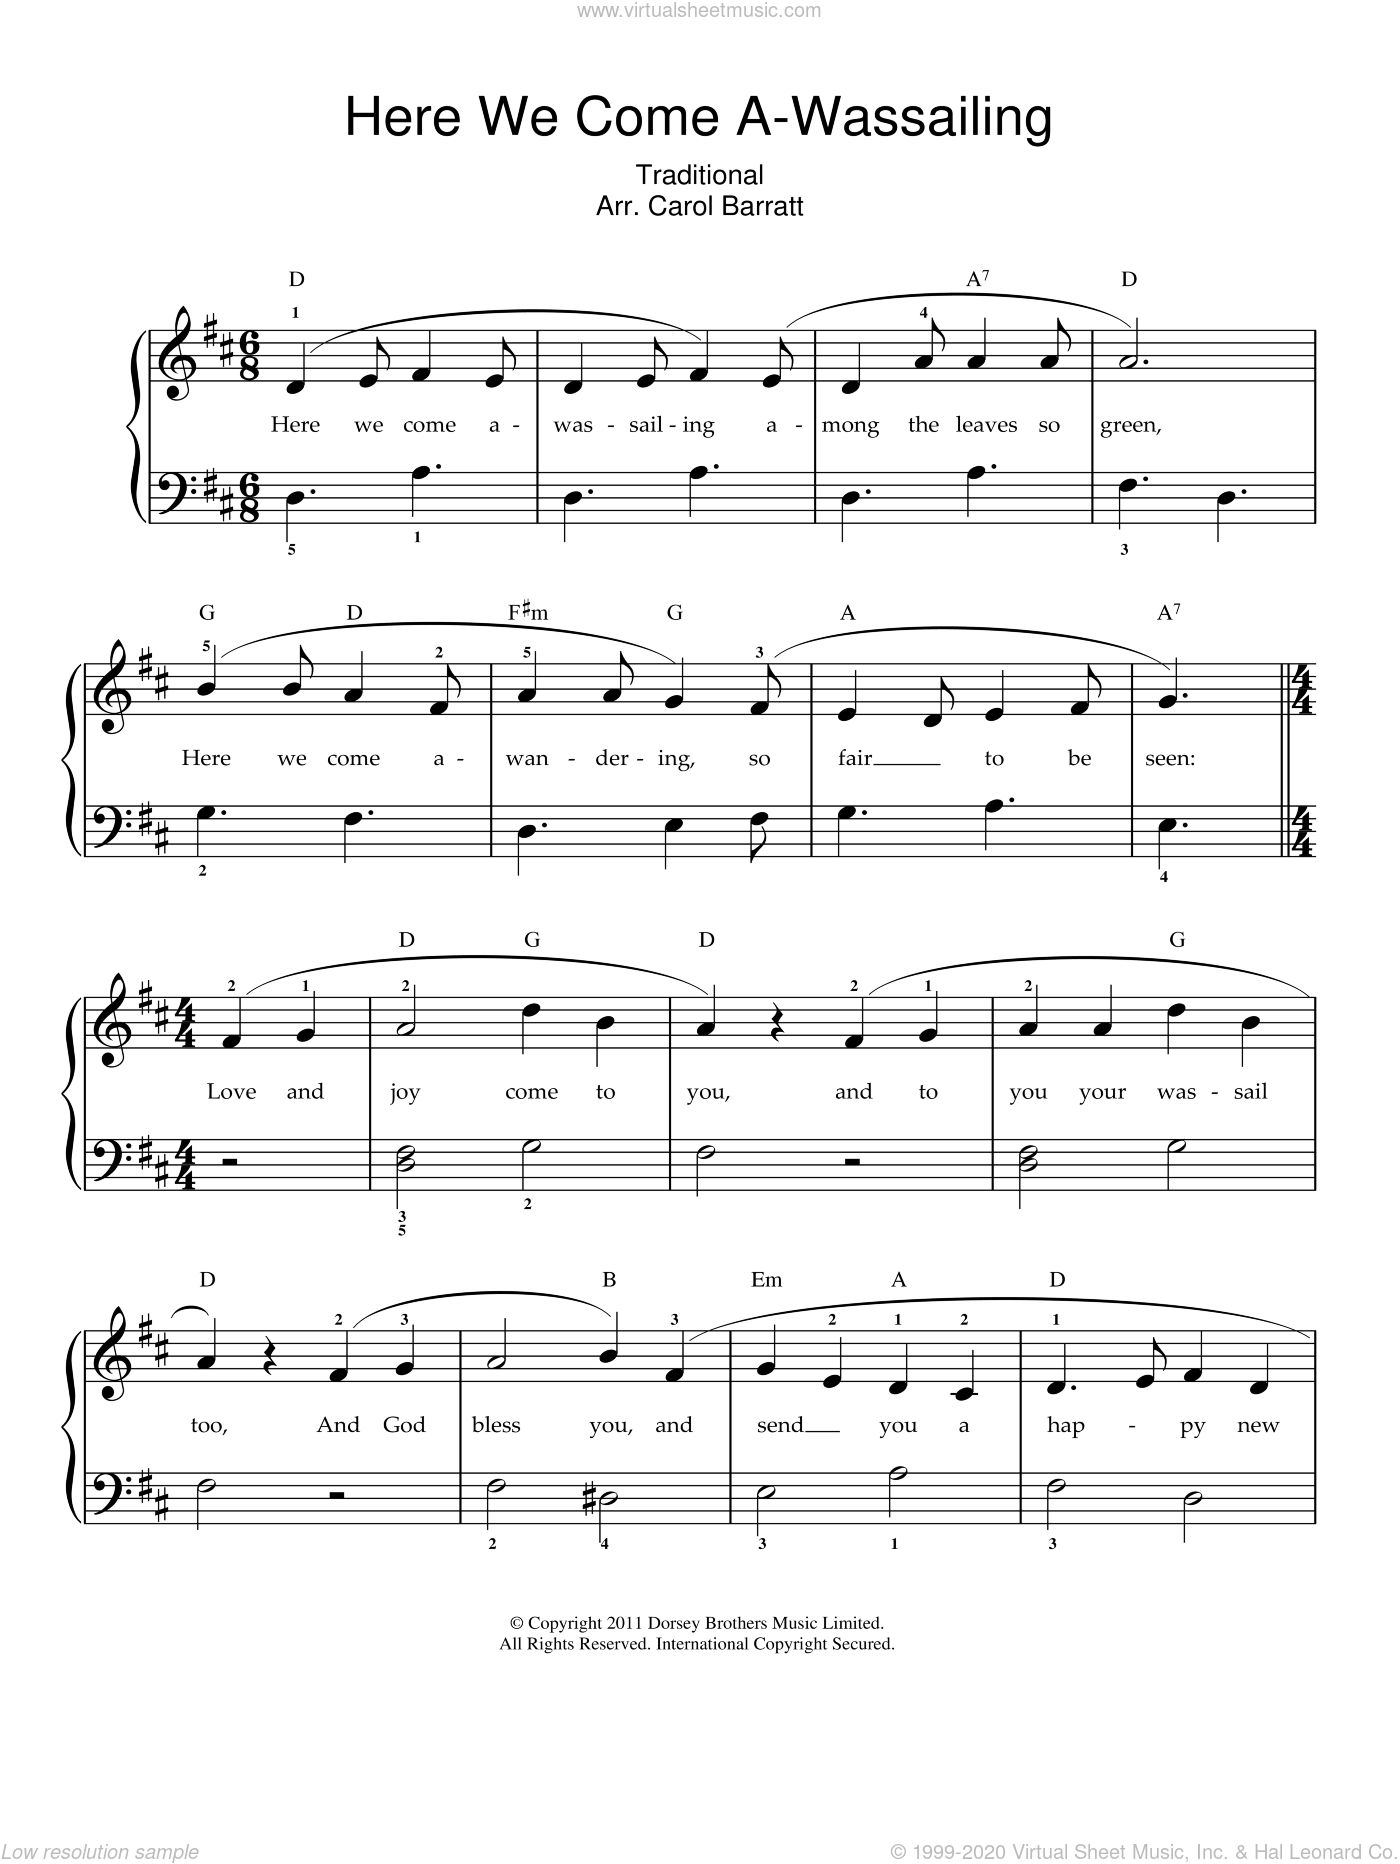 Here We Come A-Wassailing sheet music for voice and piano